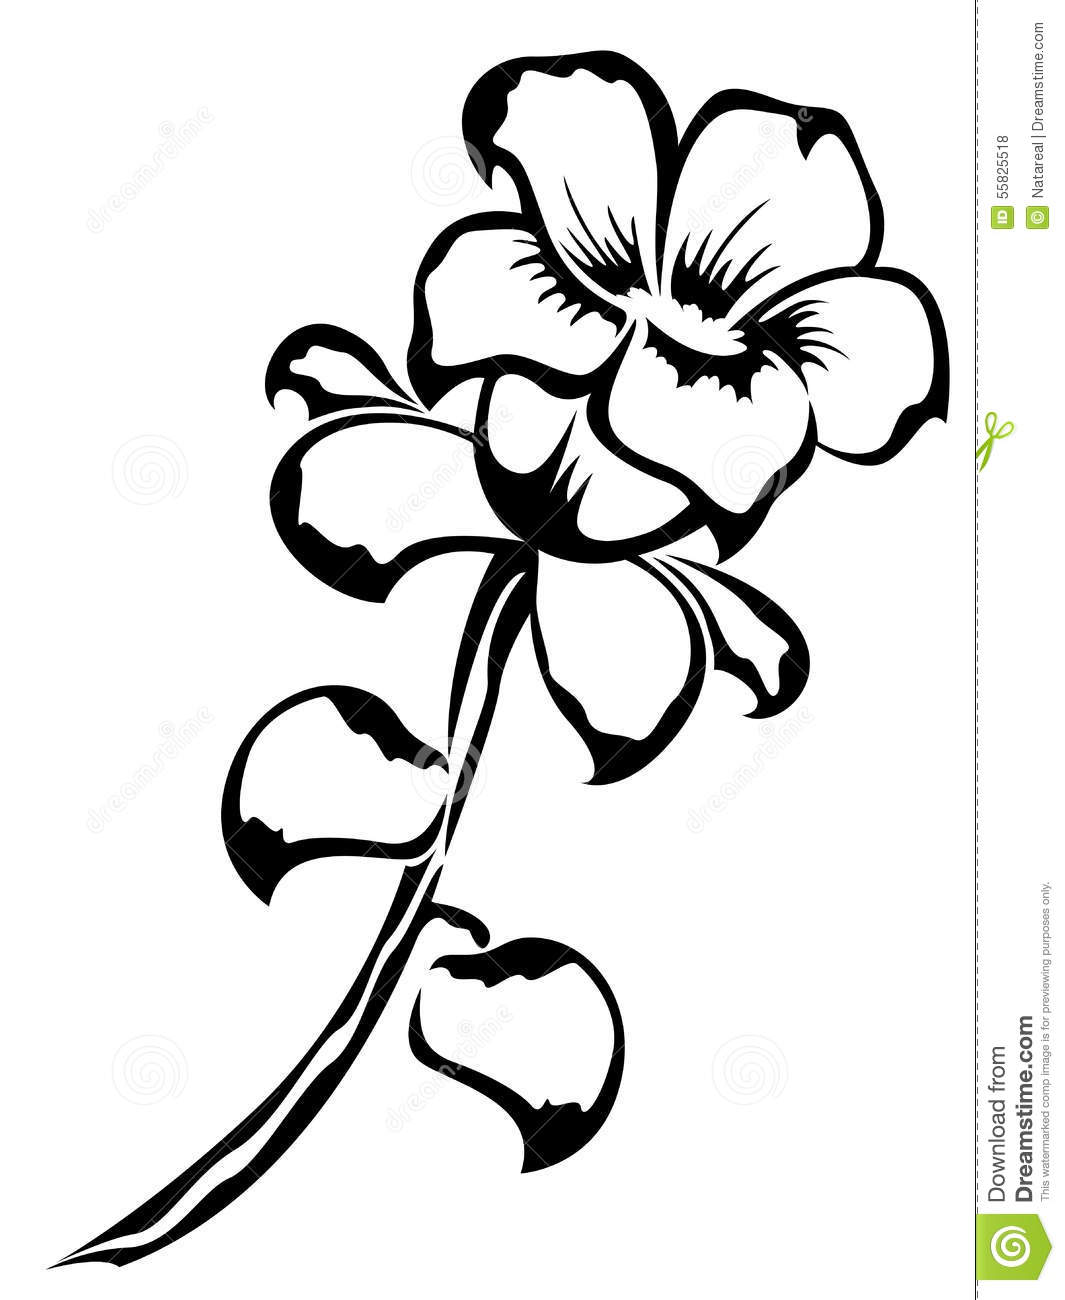 Black Outline Of Single Flower Stock Vector Illustration Of